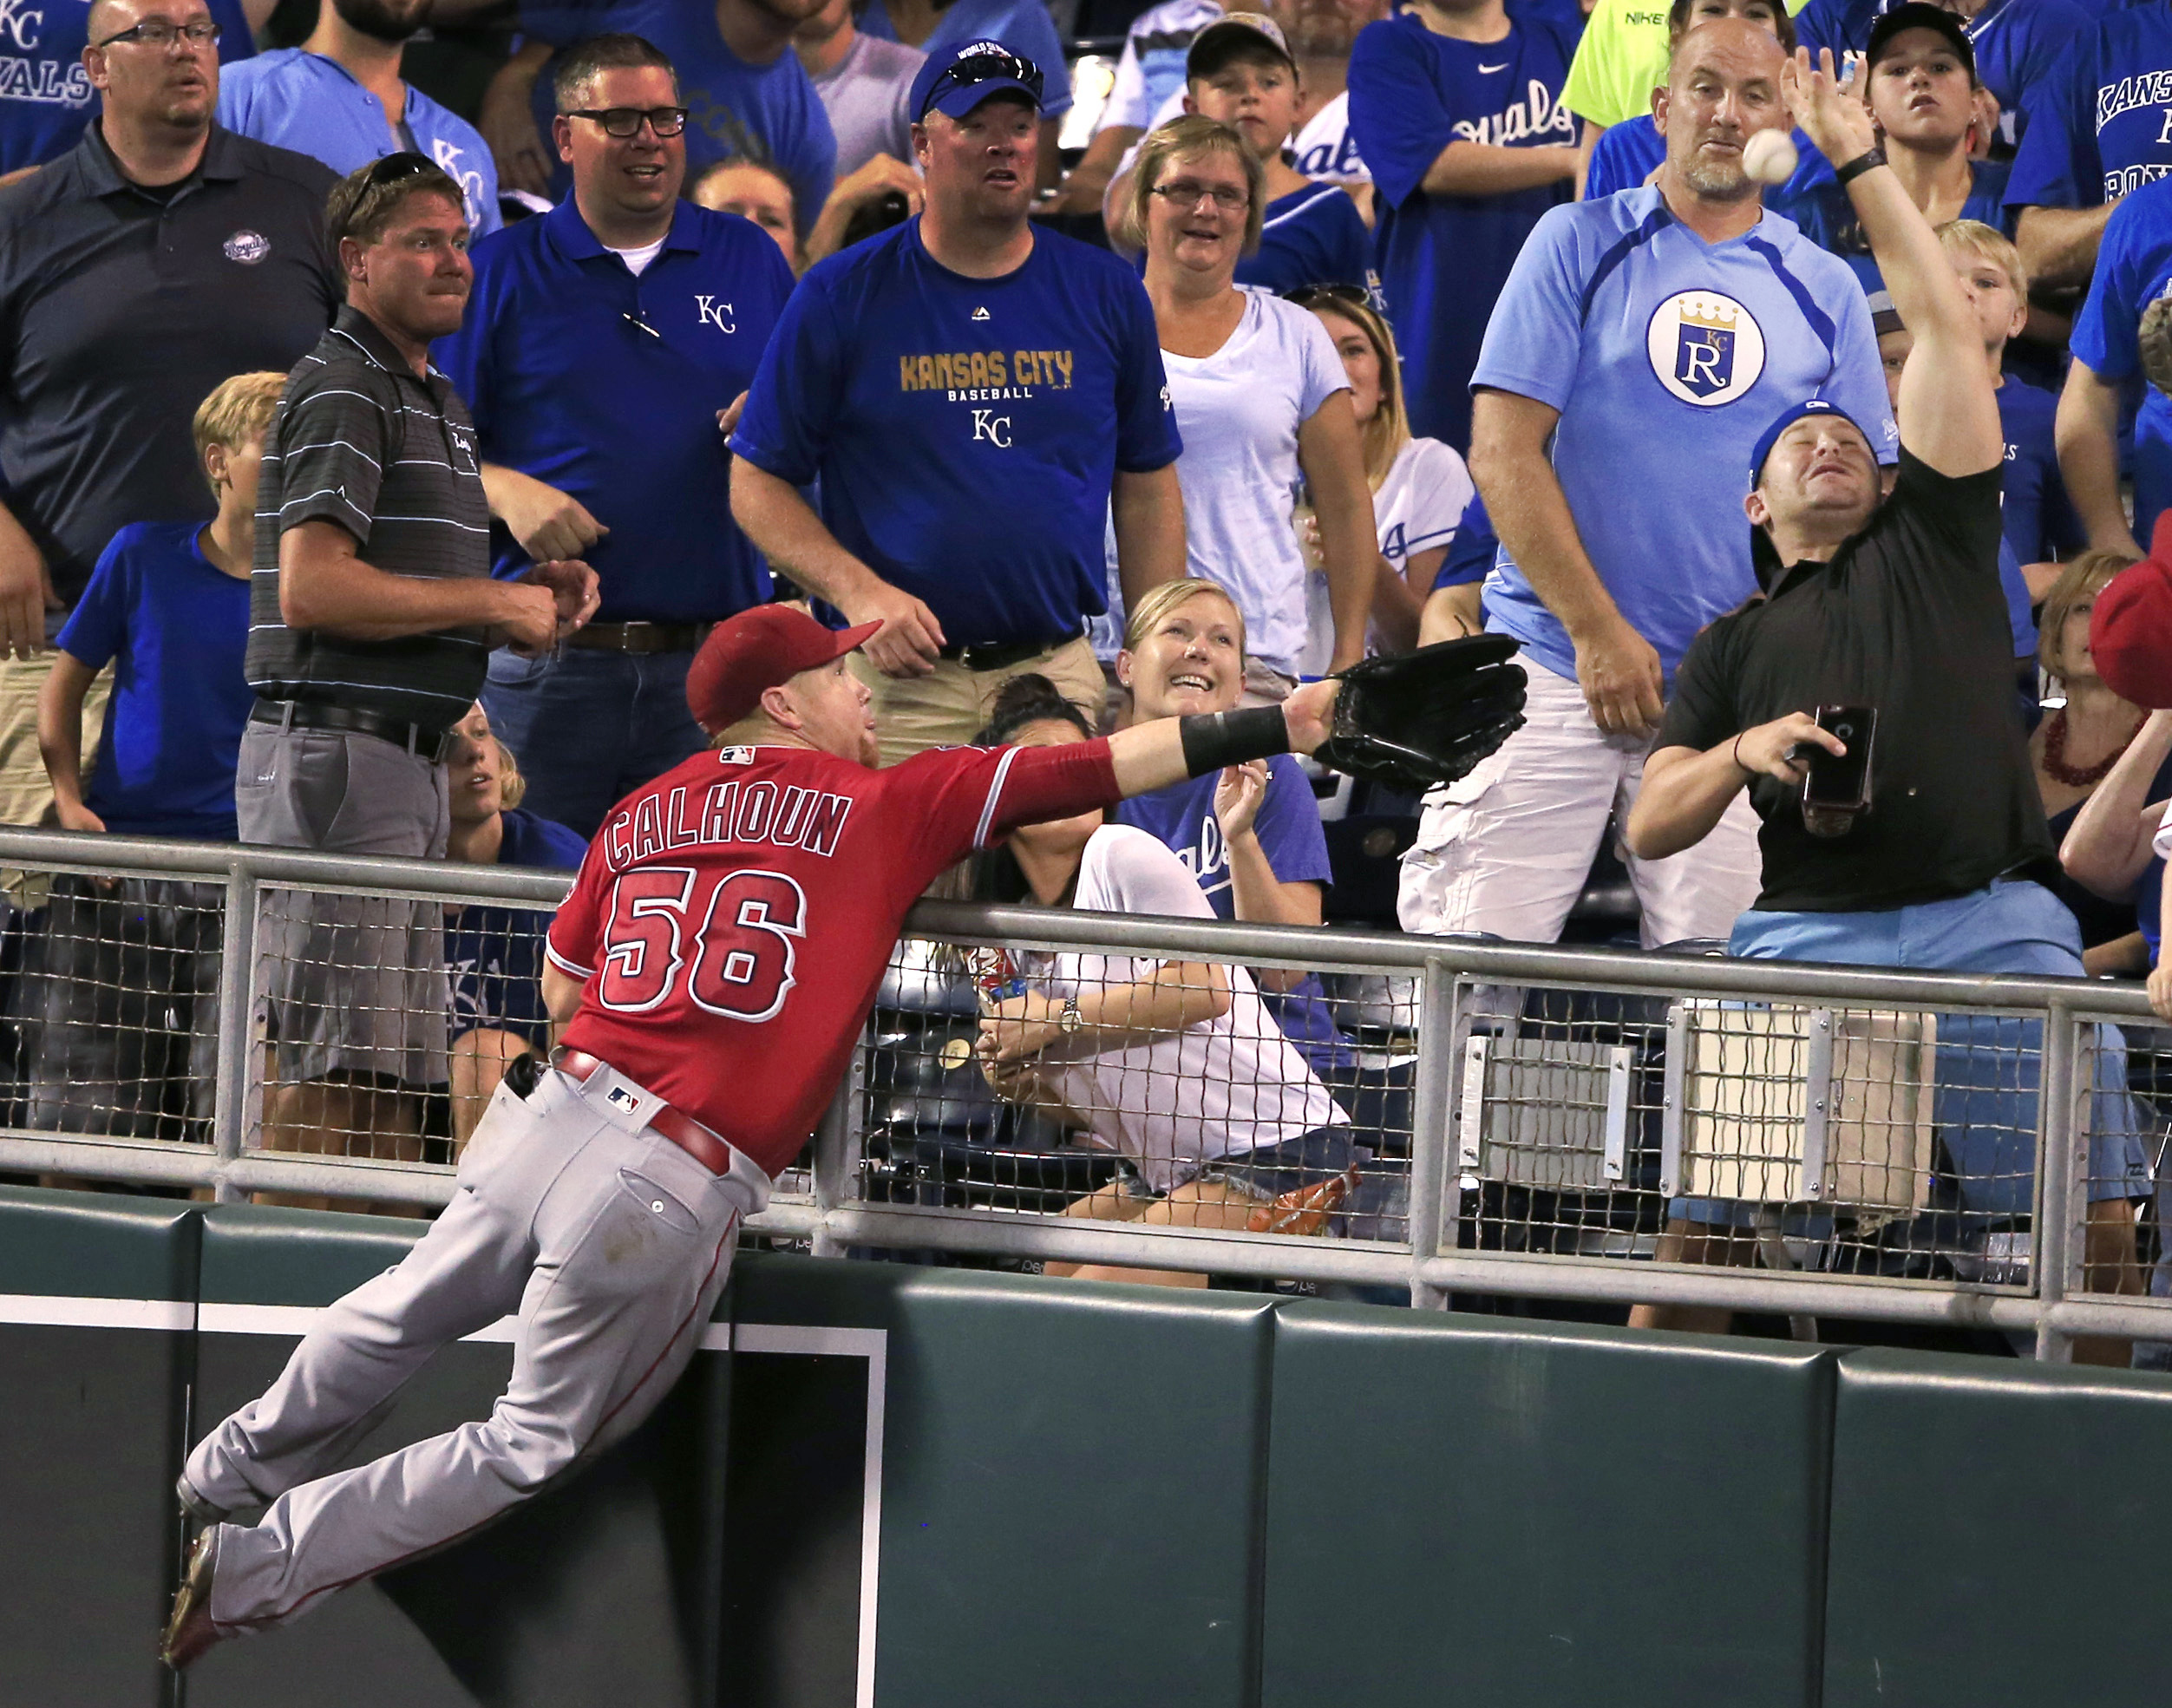 Los Angeles Angels right fielder Kole Calhoun leaps into the stands chasing a foul ball hit by Kansas City Royals' Alcides Escobar during the fifth inning of a baseball game at Kauffman Stadium in Kansas City, Mo., Monday, July 25, 2016. (AP Photo/Orlin W